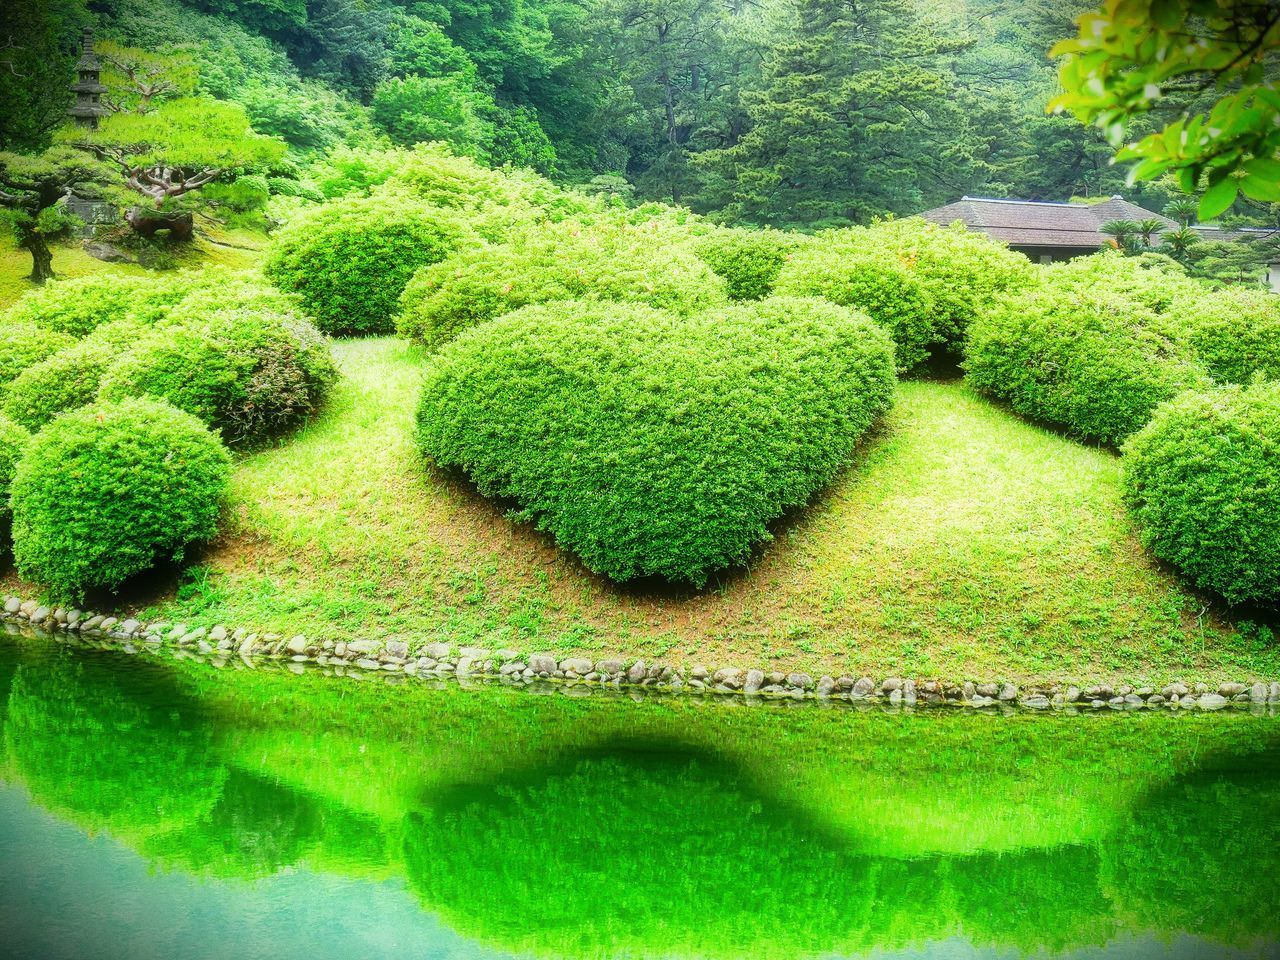 ❤ Hi! Hello World Taking Photos Day No People Green Color Plant Outdoors Beauty In Nature Water Nature Holiday Destination Japanese Garden Japan Photography Reflection Check This Out Enjoying Life Japan 香川 高松 栗林公園